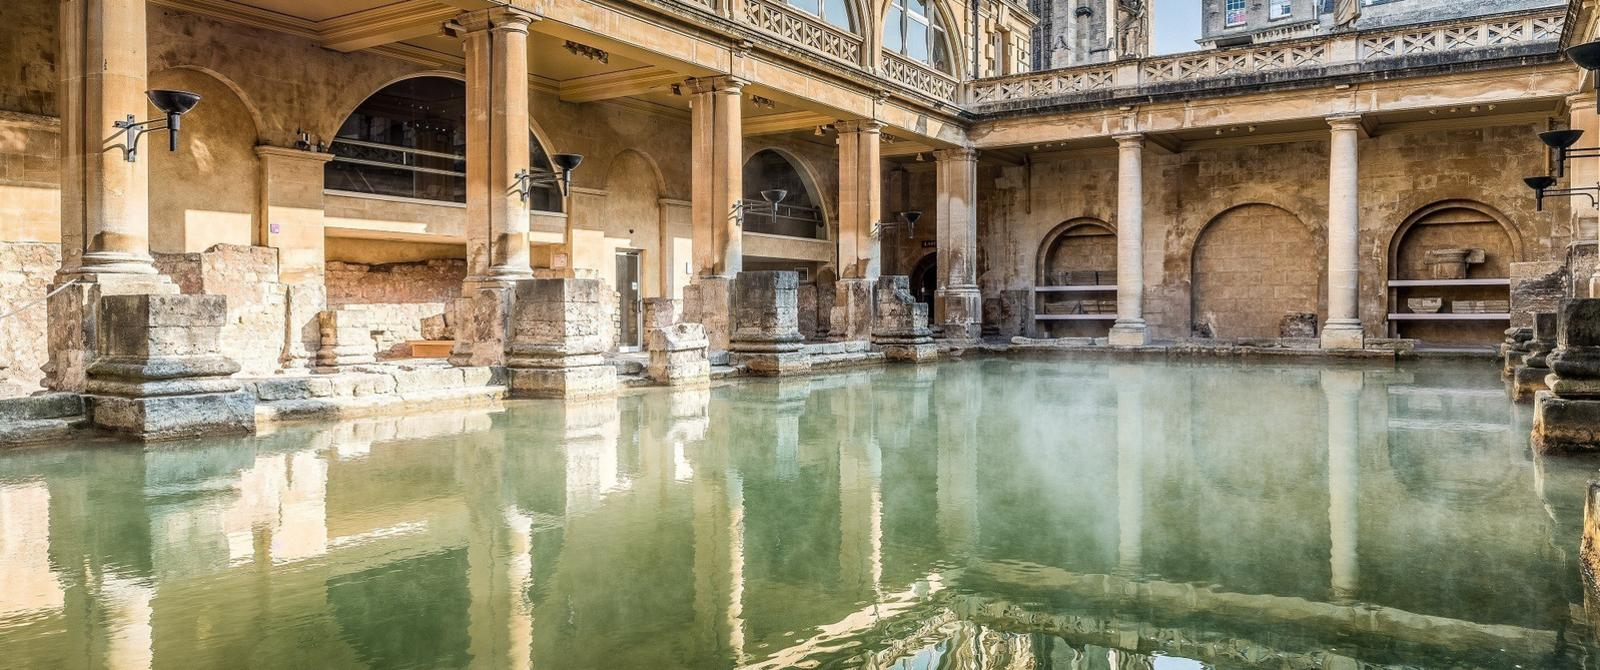 Image: The Great Bath at the Roman Baths